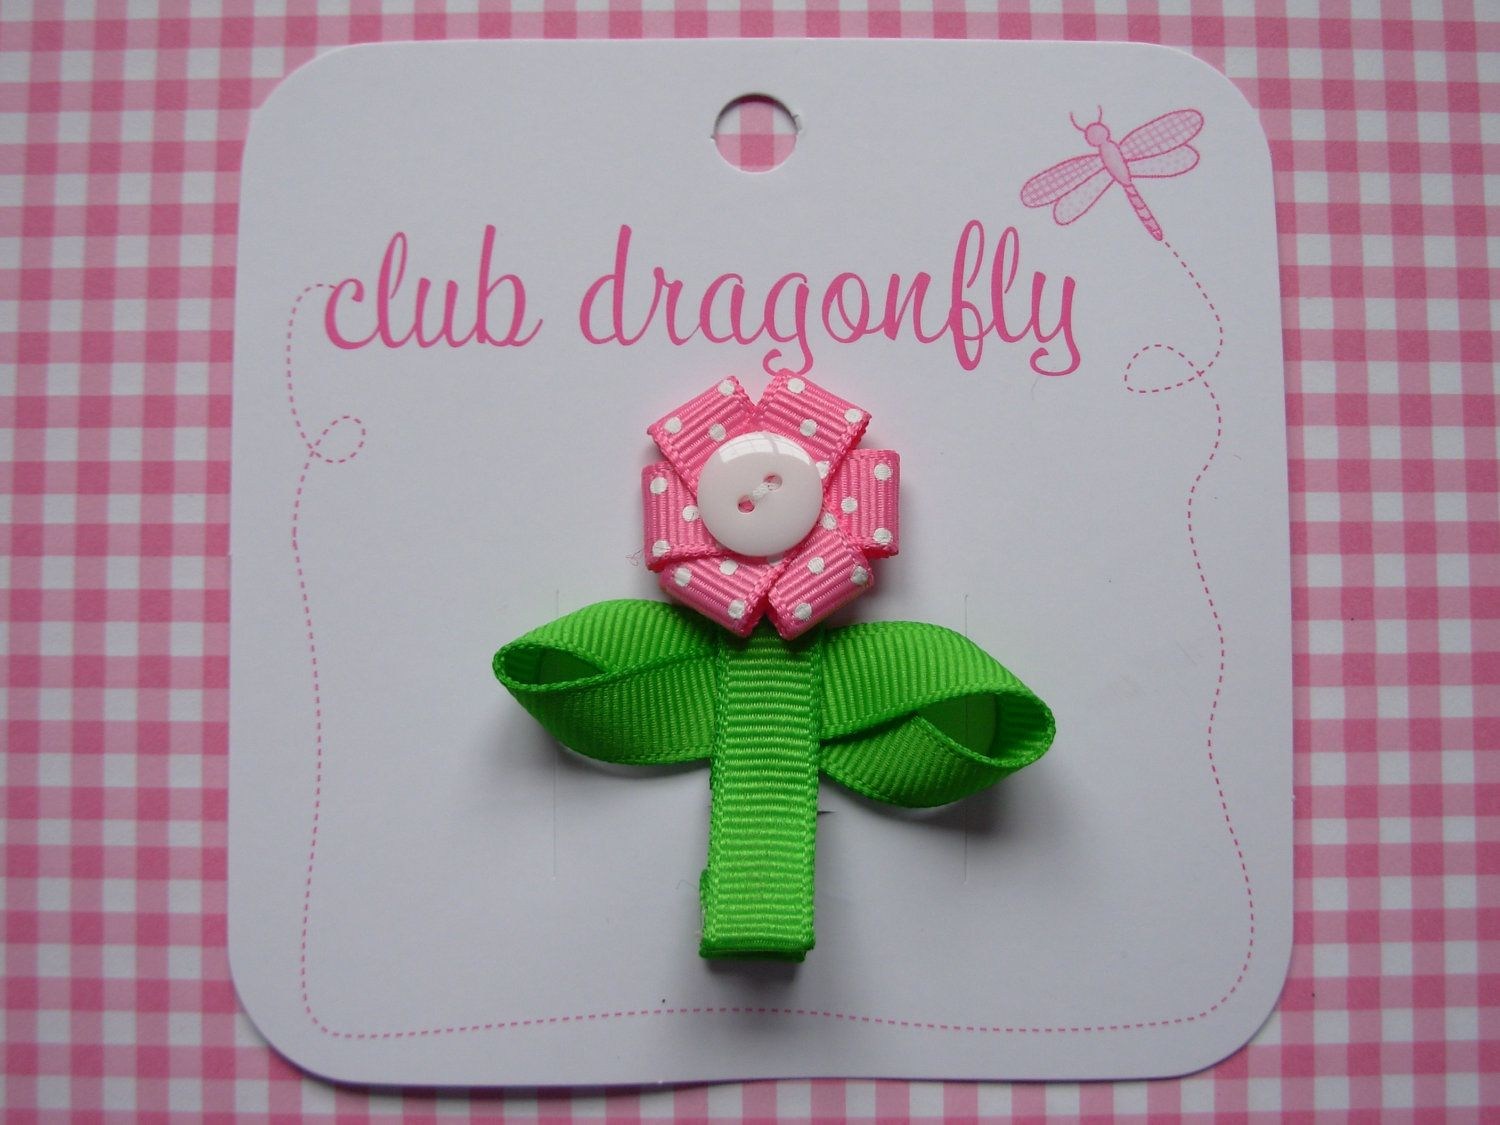 Flower hair clip by clubdragonfly on Etsy